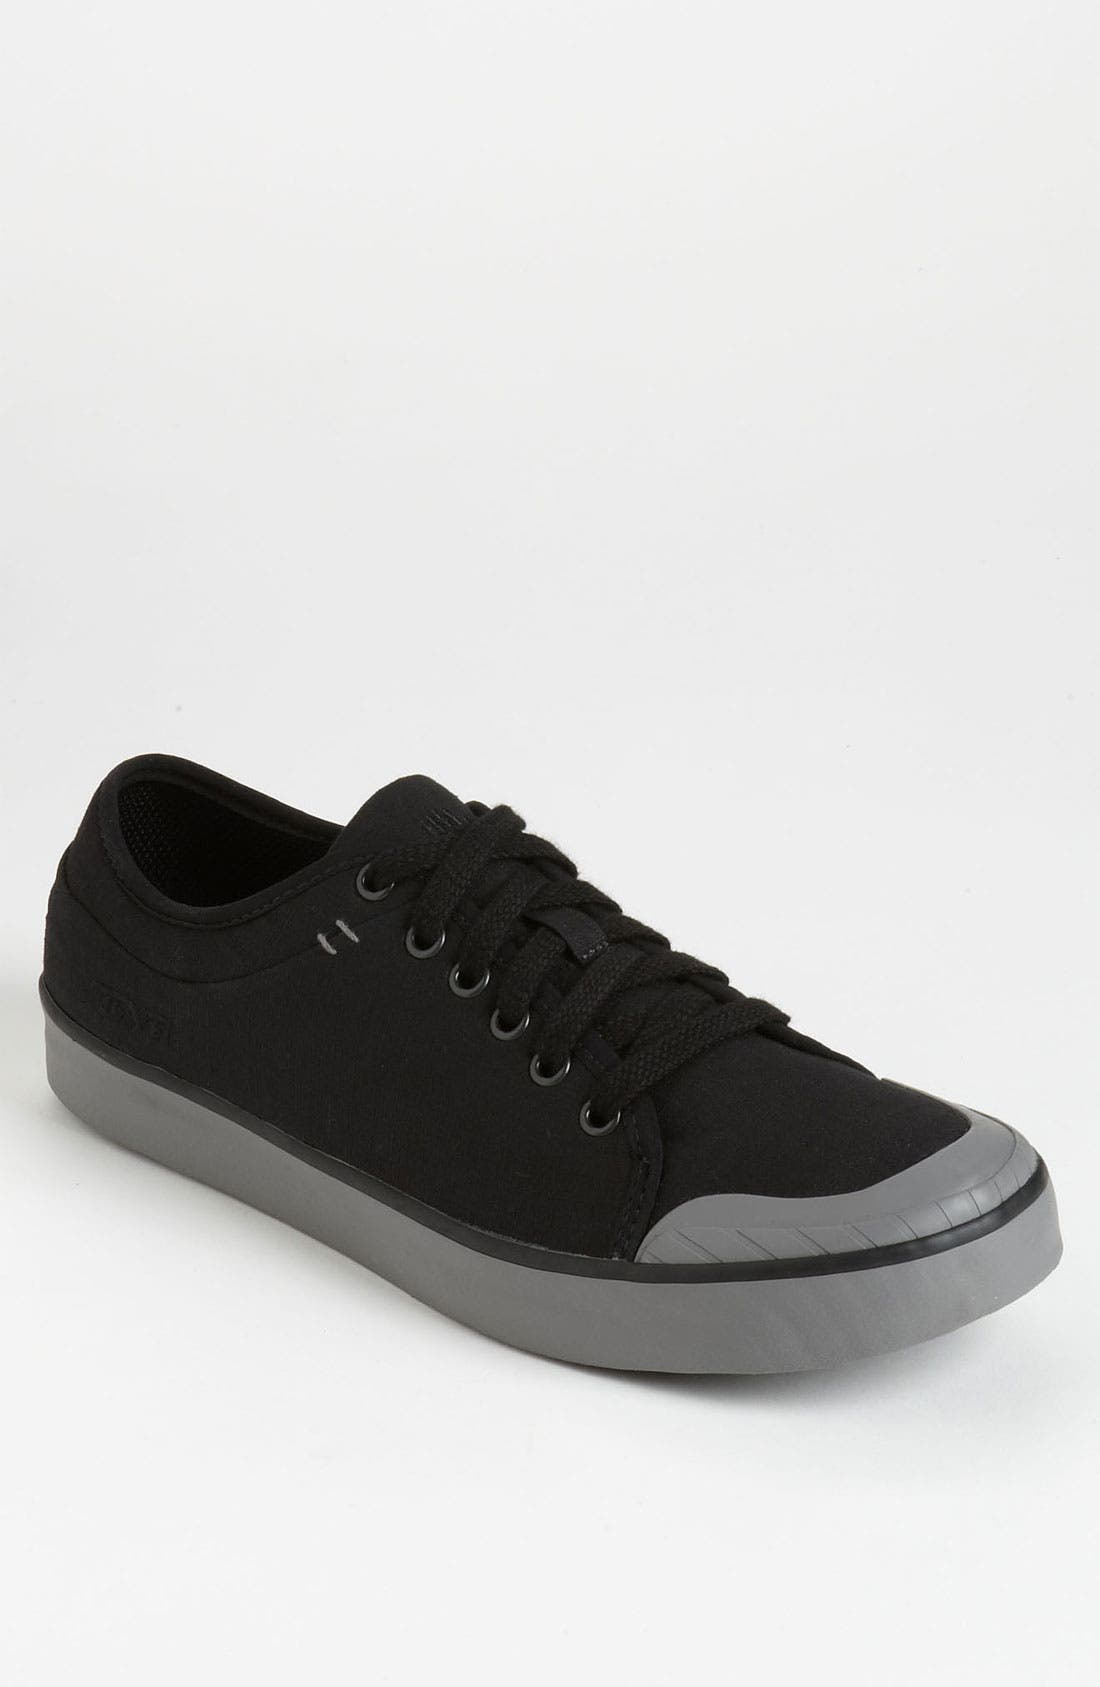 TEVA 'Joyride' Sneaker, Main, color, 001